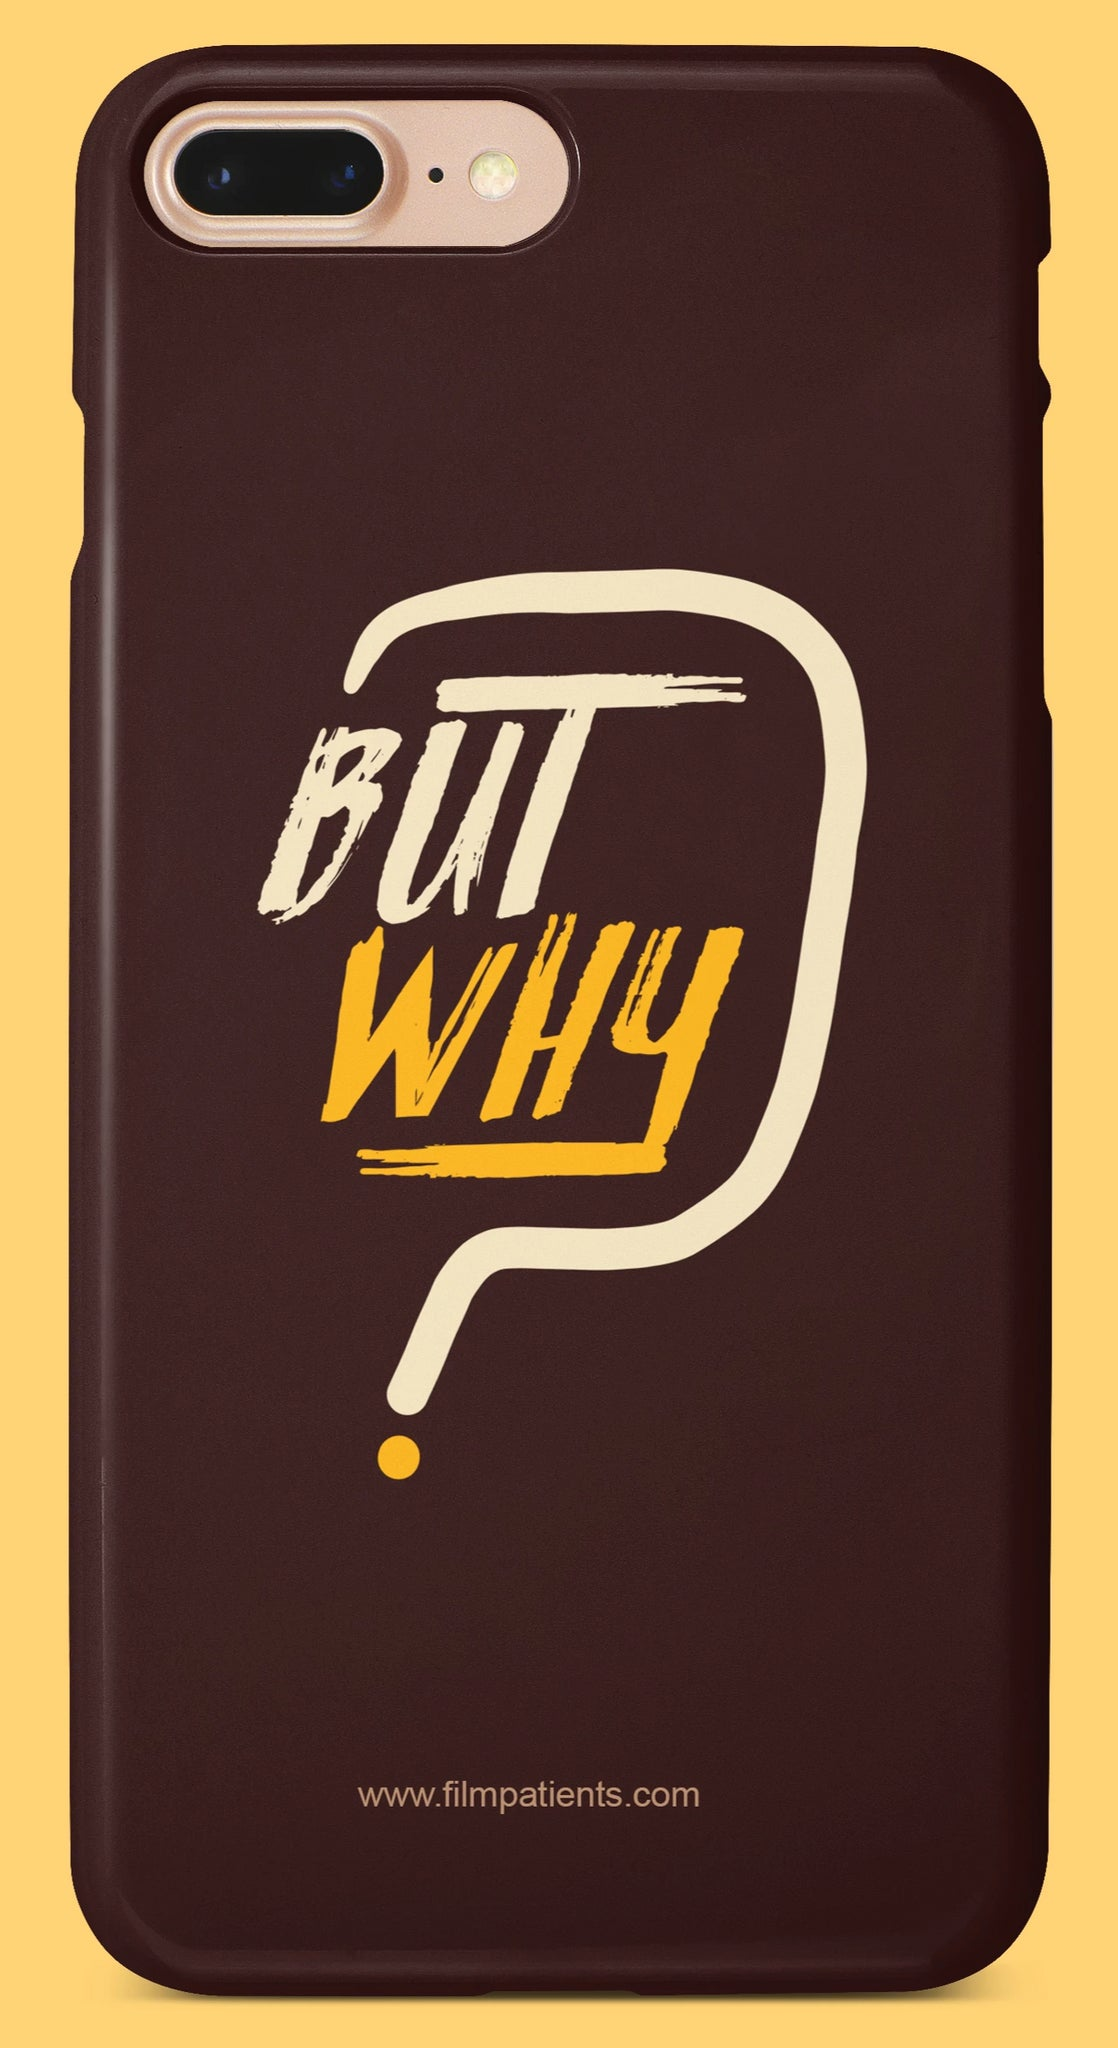 But Why Mukesh Mobile Cover | Film Patients